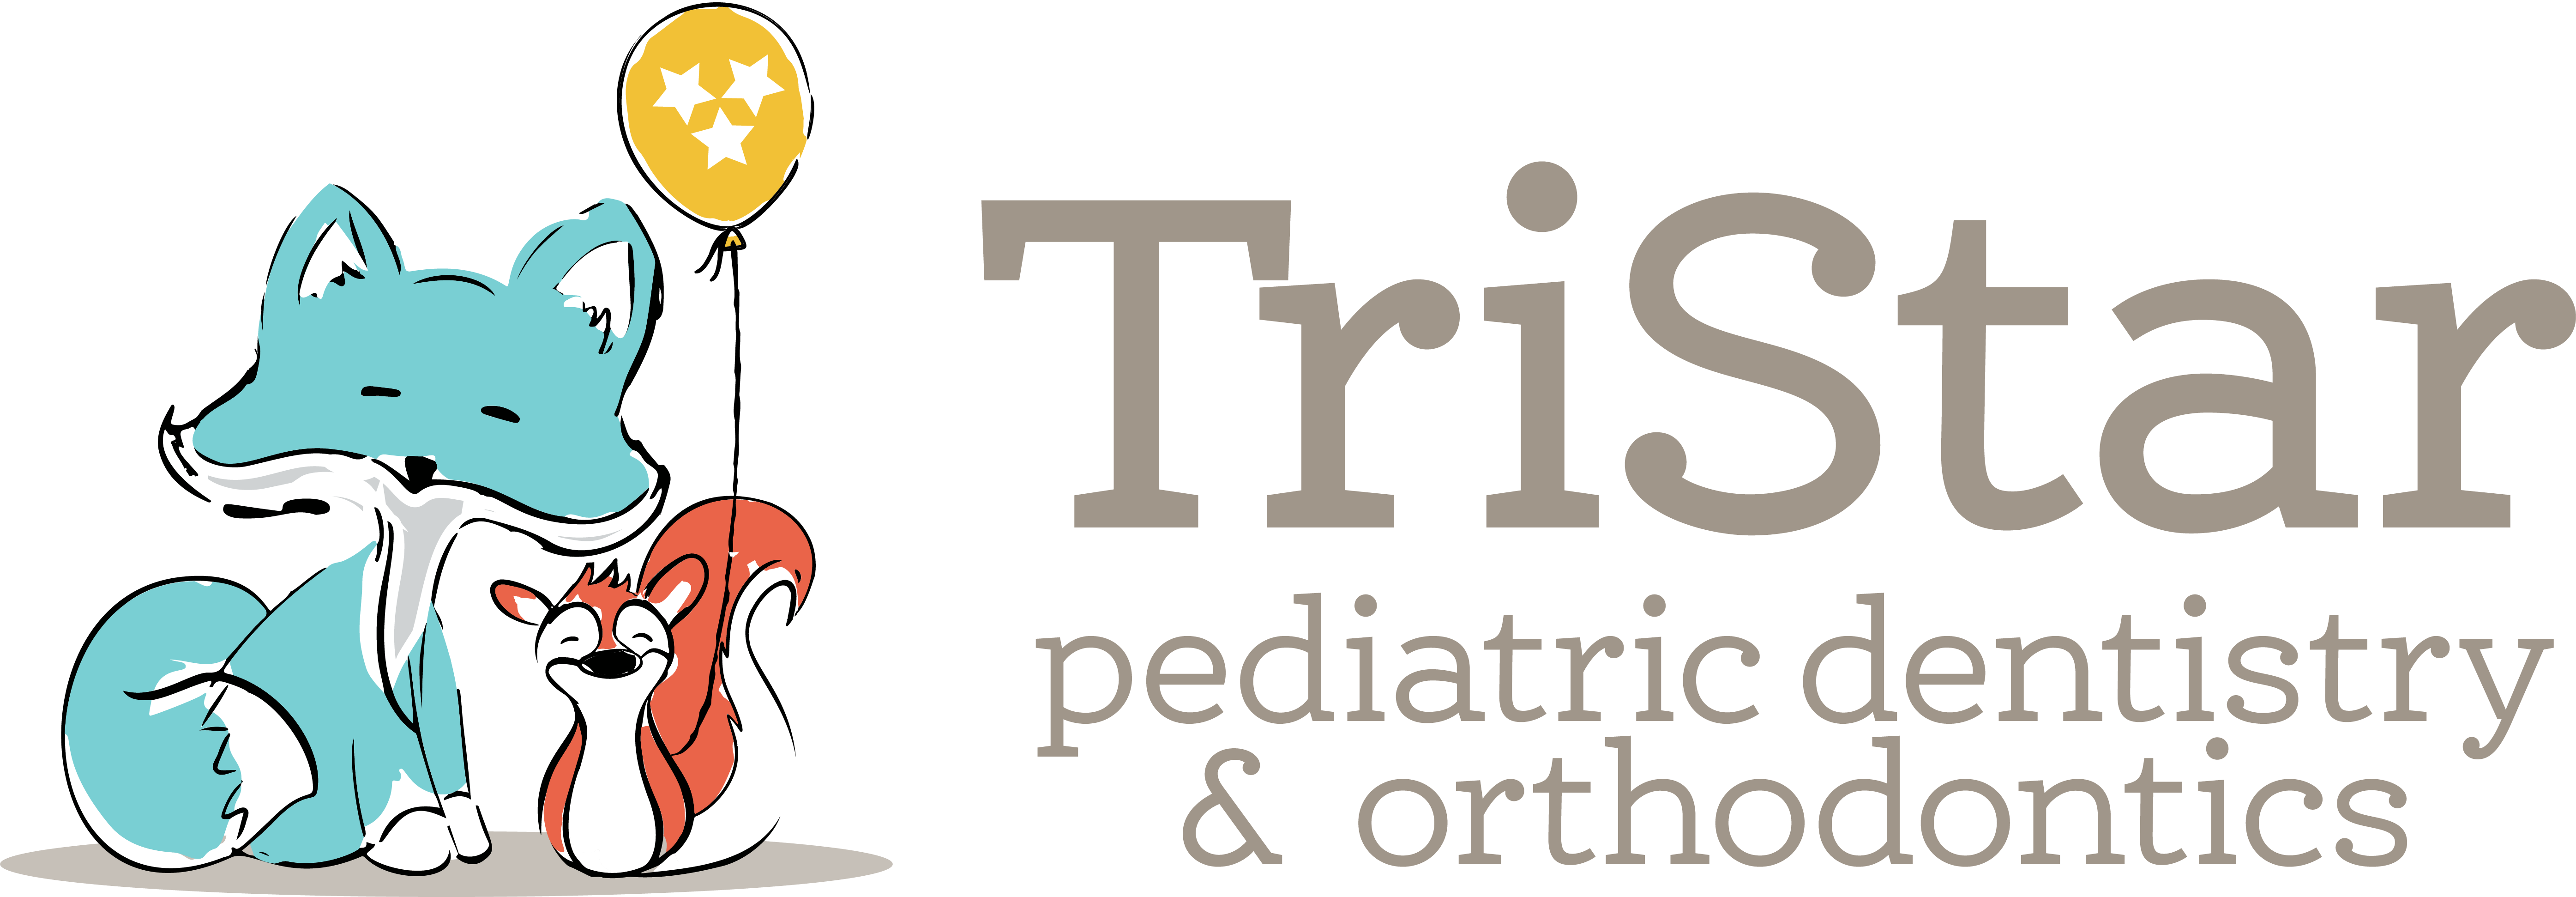 Tristar Pediatric Dentistry & Orthodontics